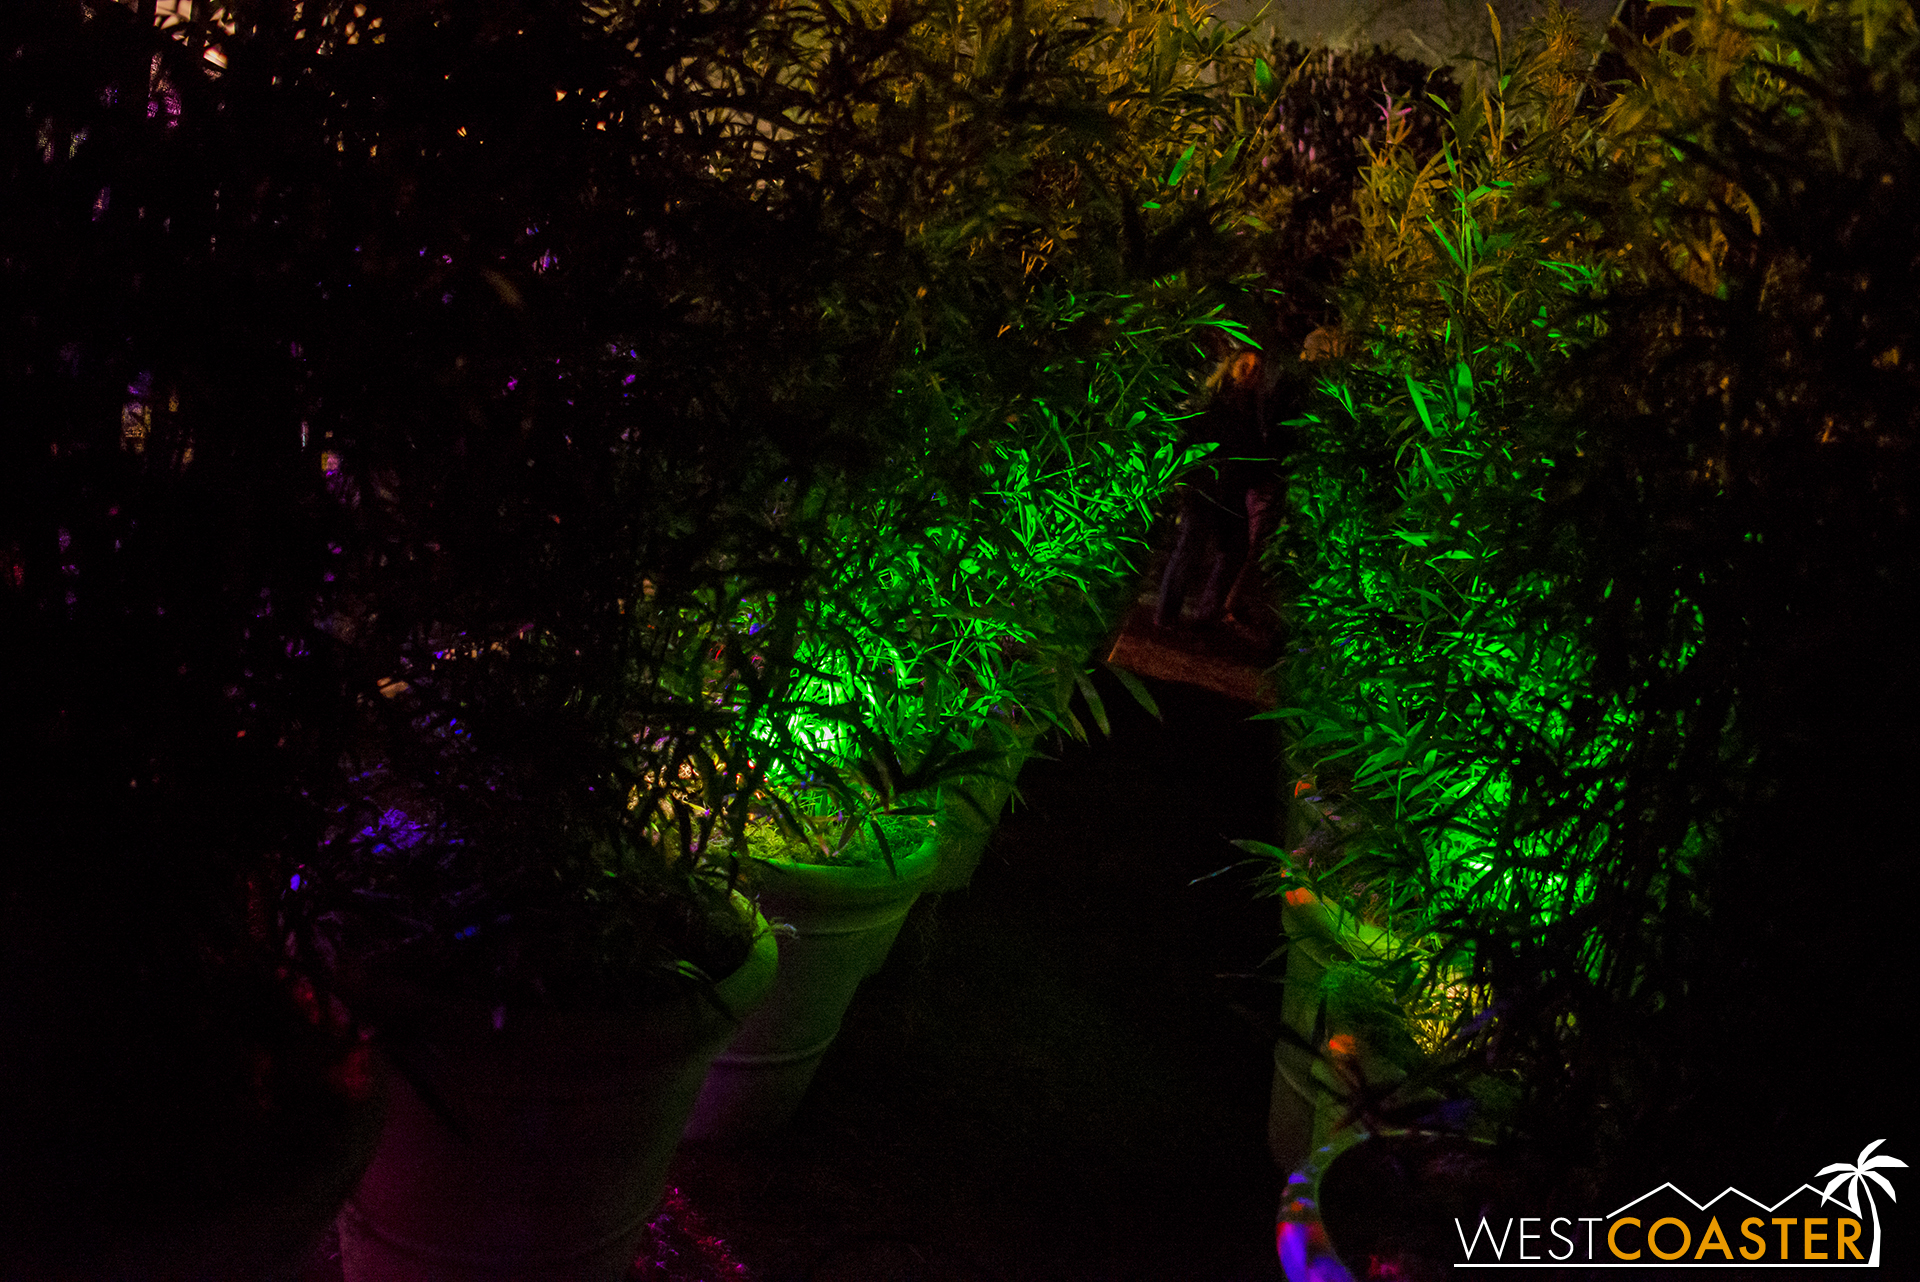 And so, onward guests marched, past this spooky shrubbery. #SpookyShrubbery